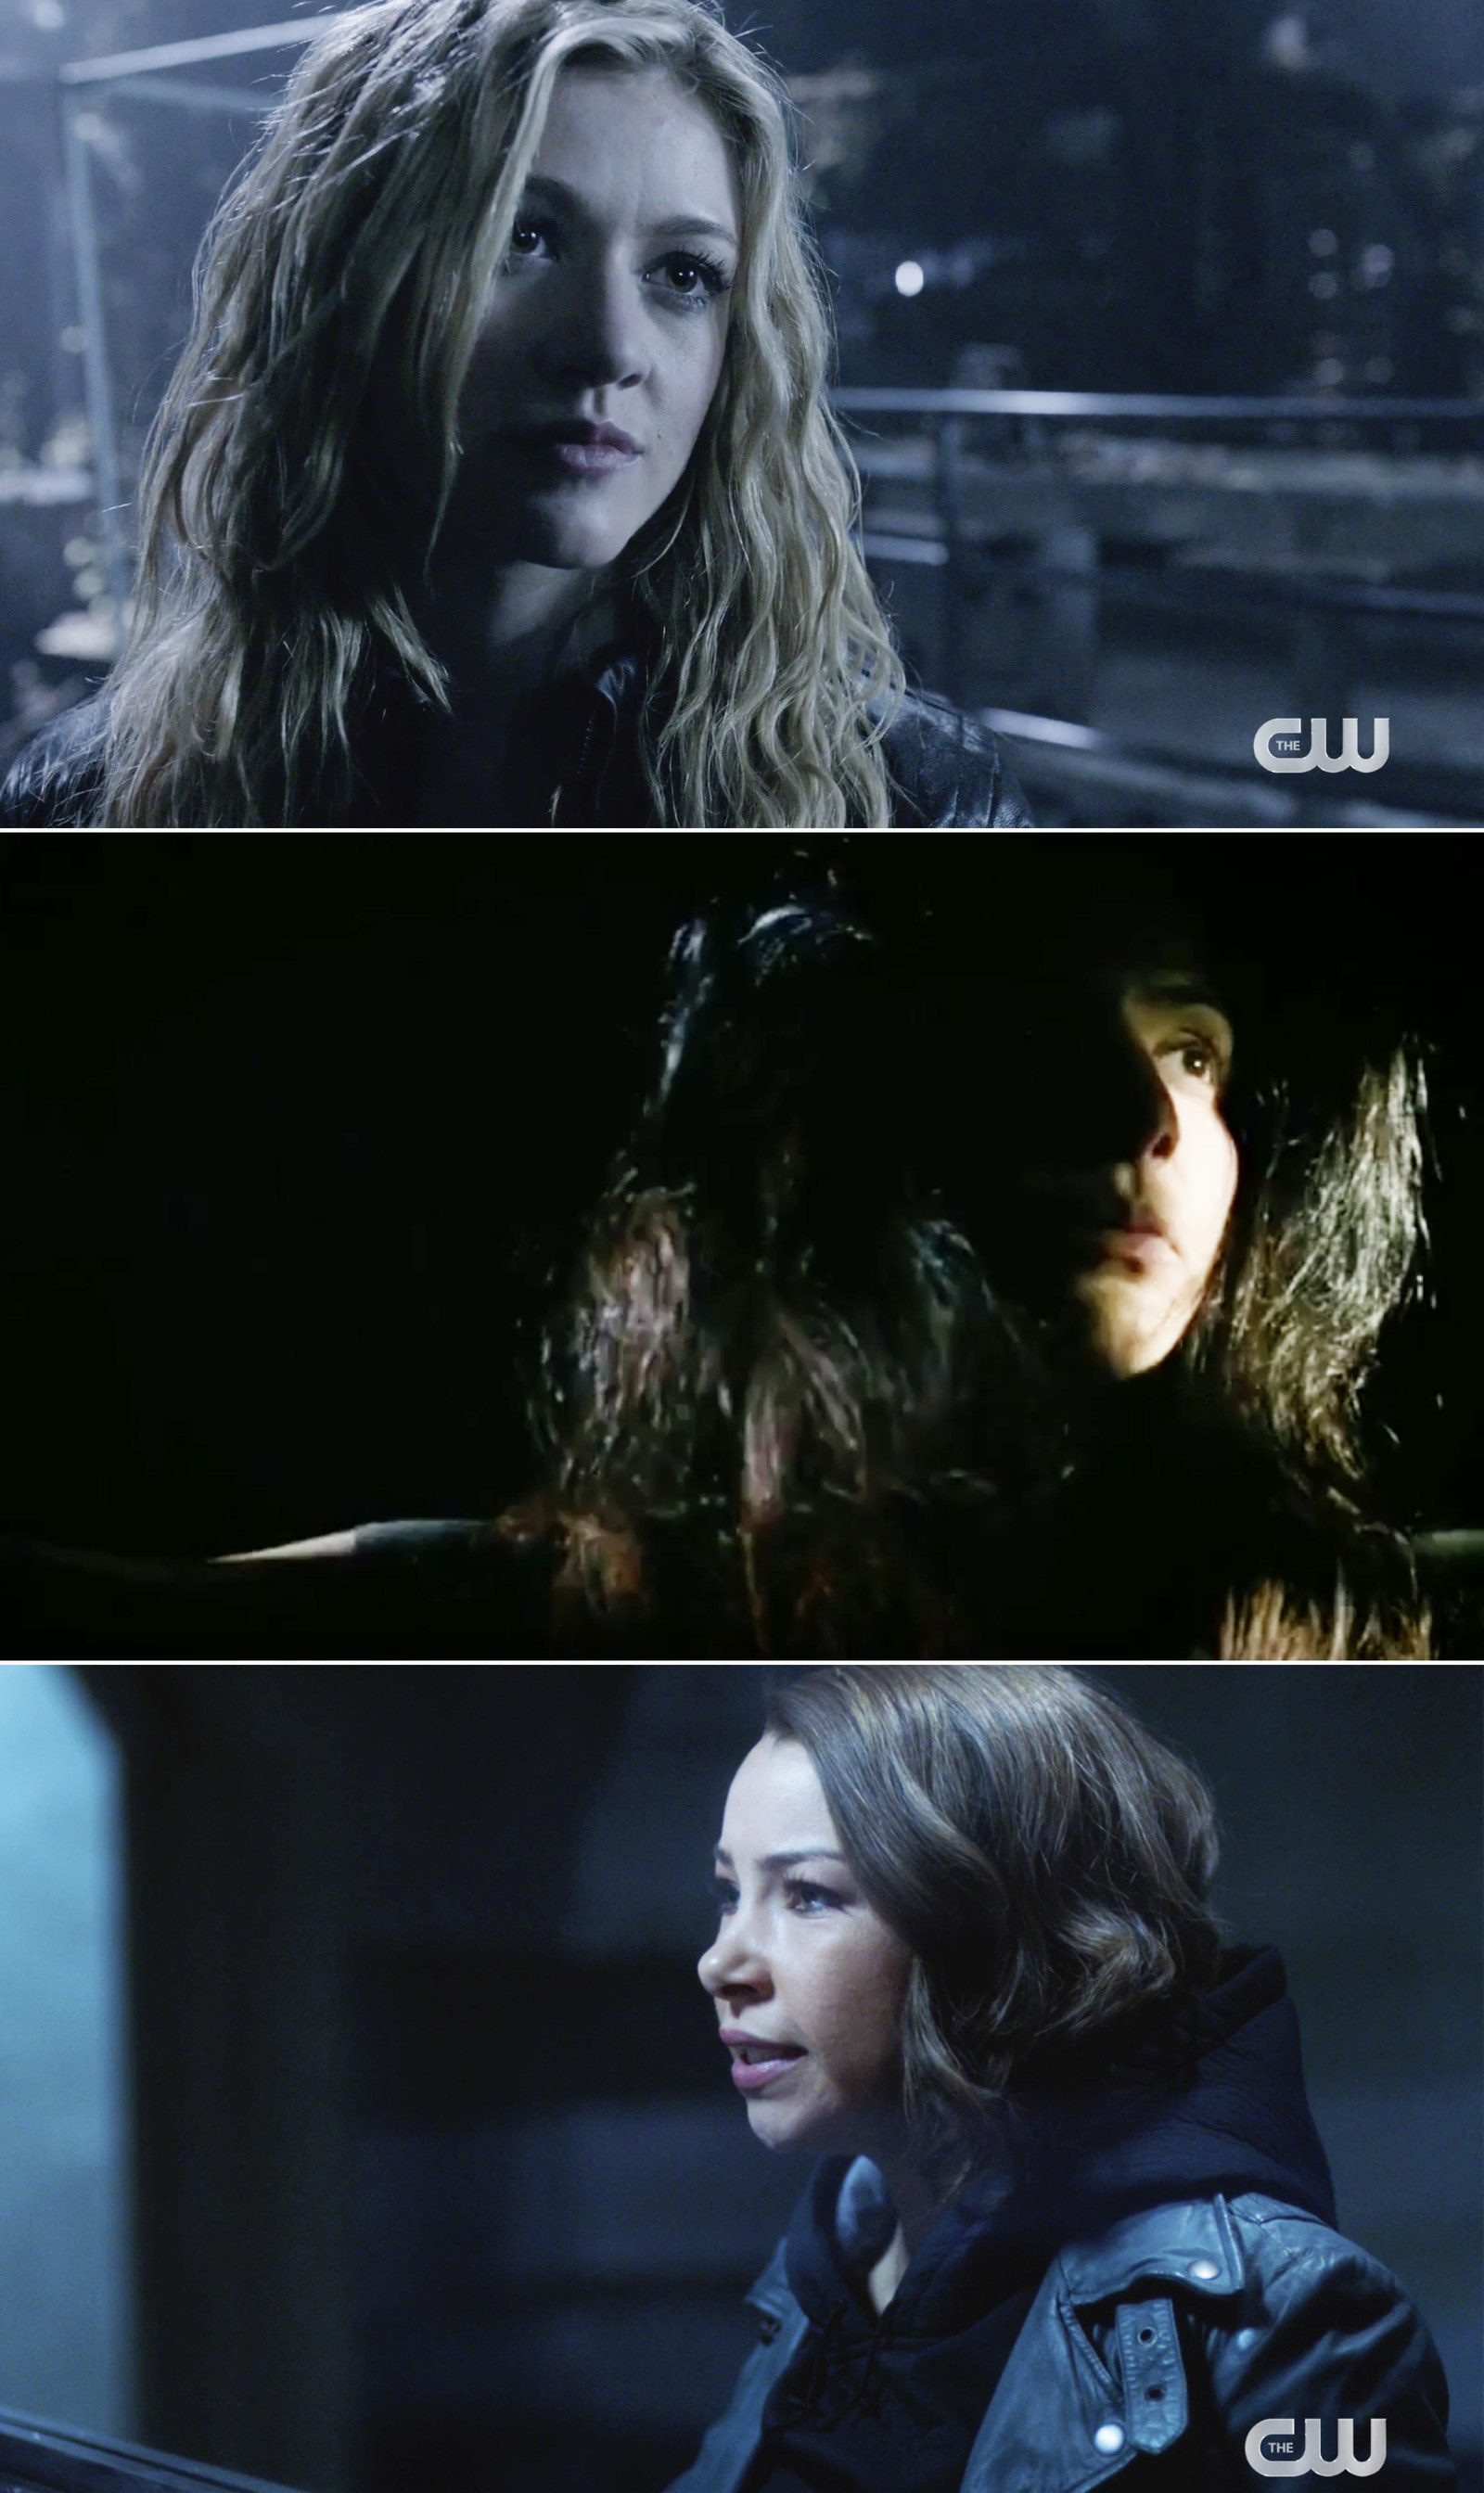 The future Arrow timeline takes place in 2040, Zari is captured in 2042 before she joins The Legends, and Nora West-Allen keep traveling back to 2049.